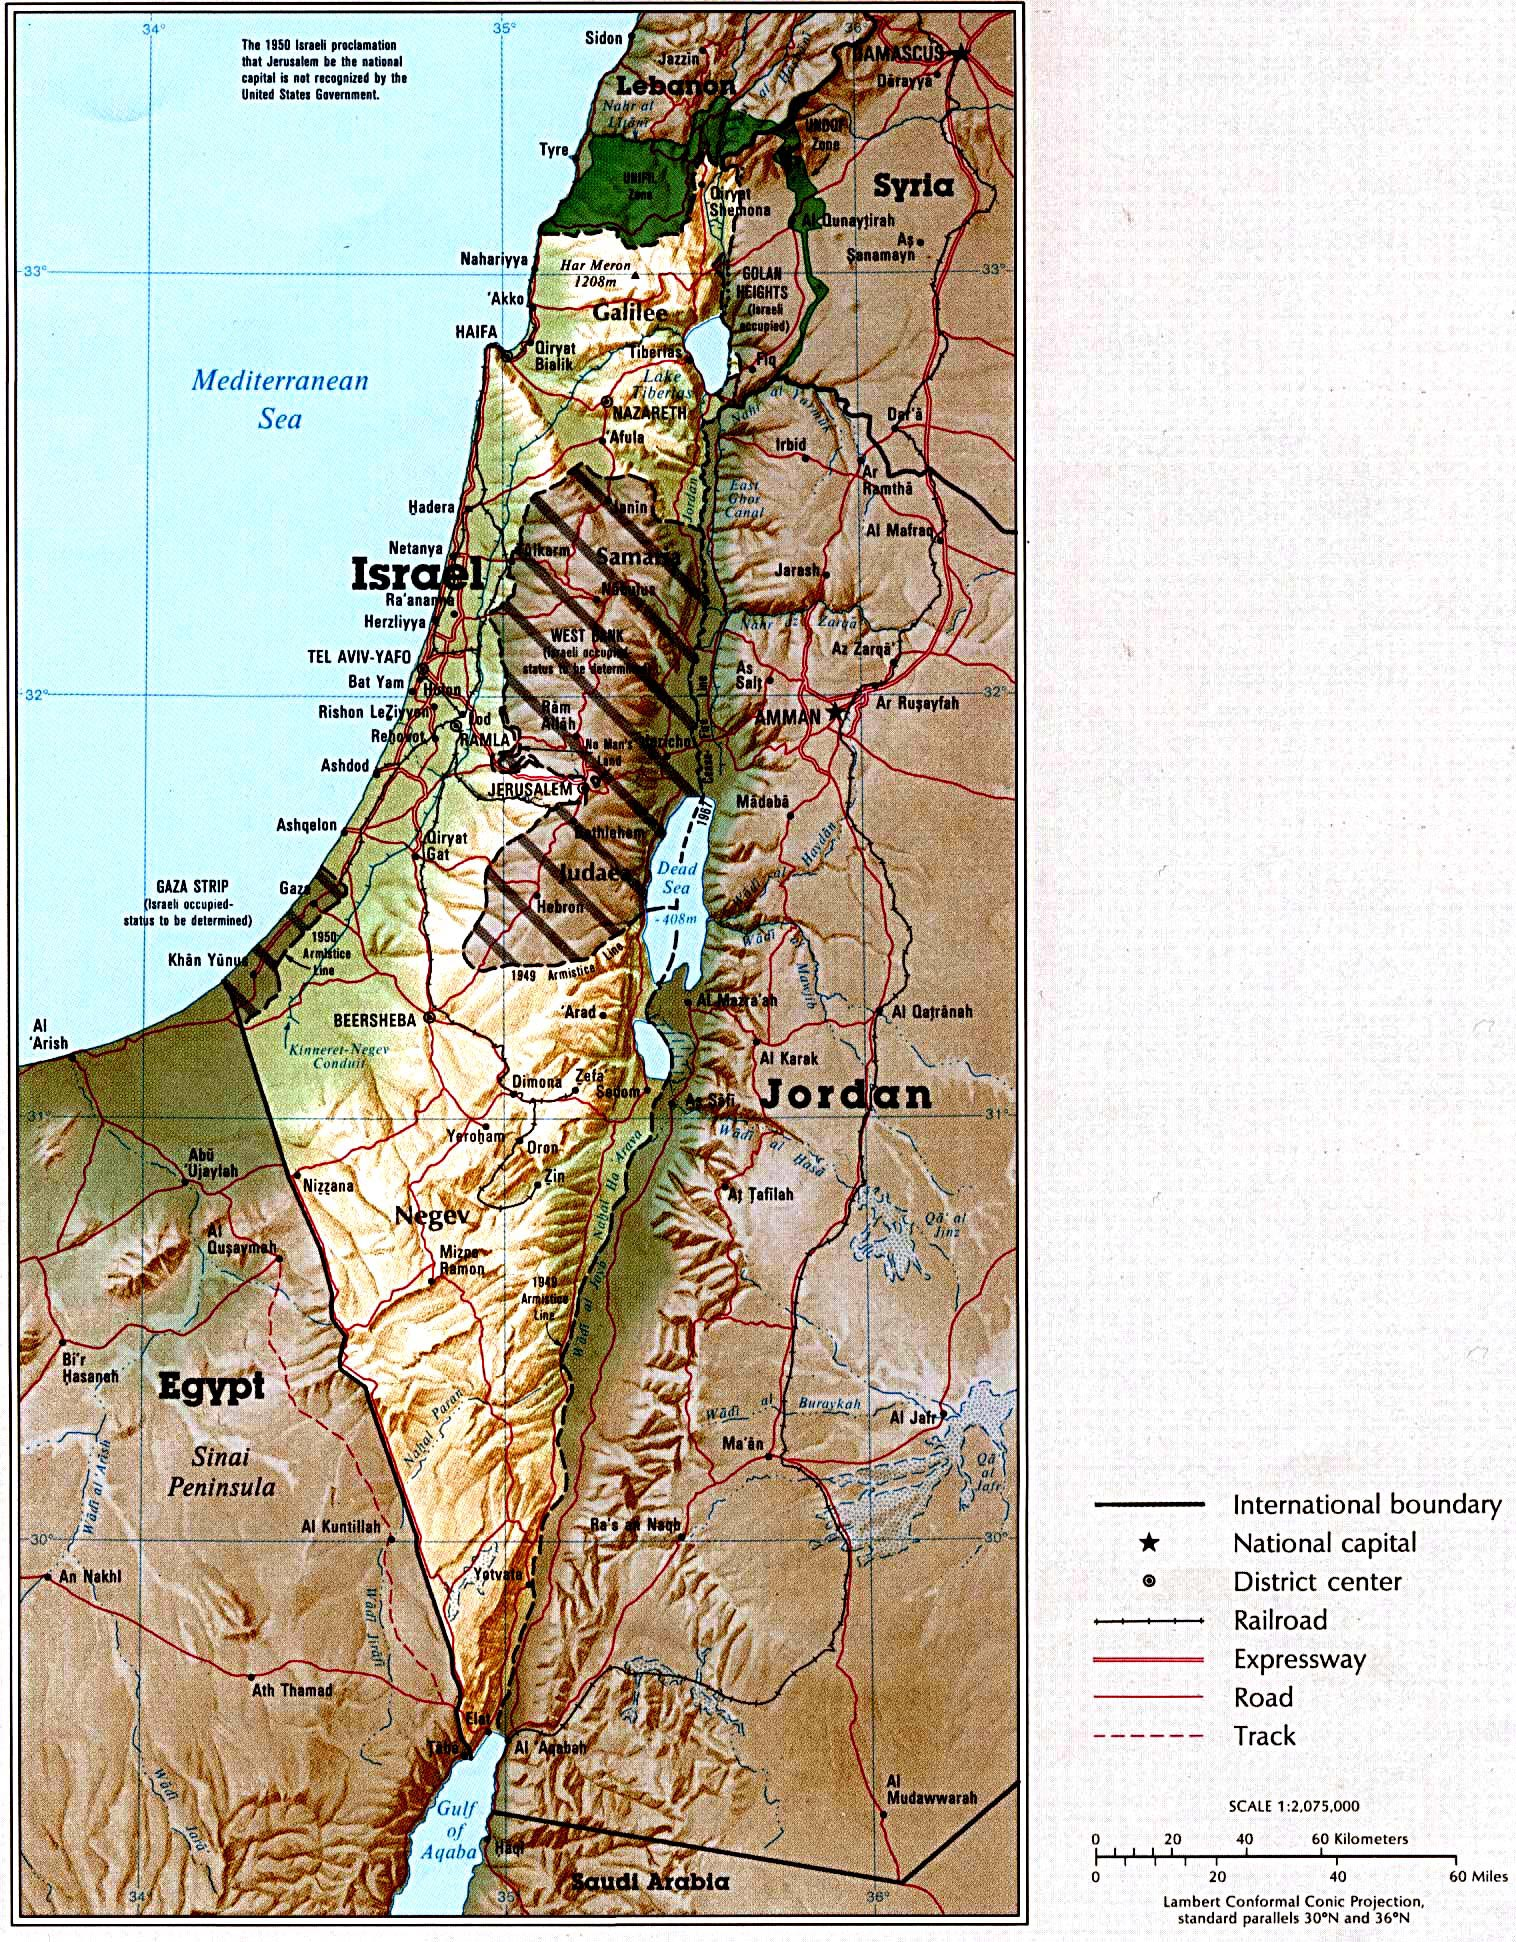 Israel Maps Printable Maps Of Israel For Download - Israel maps